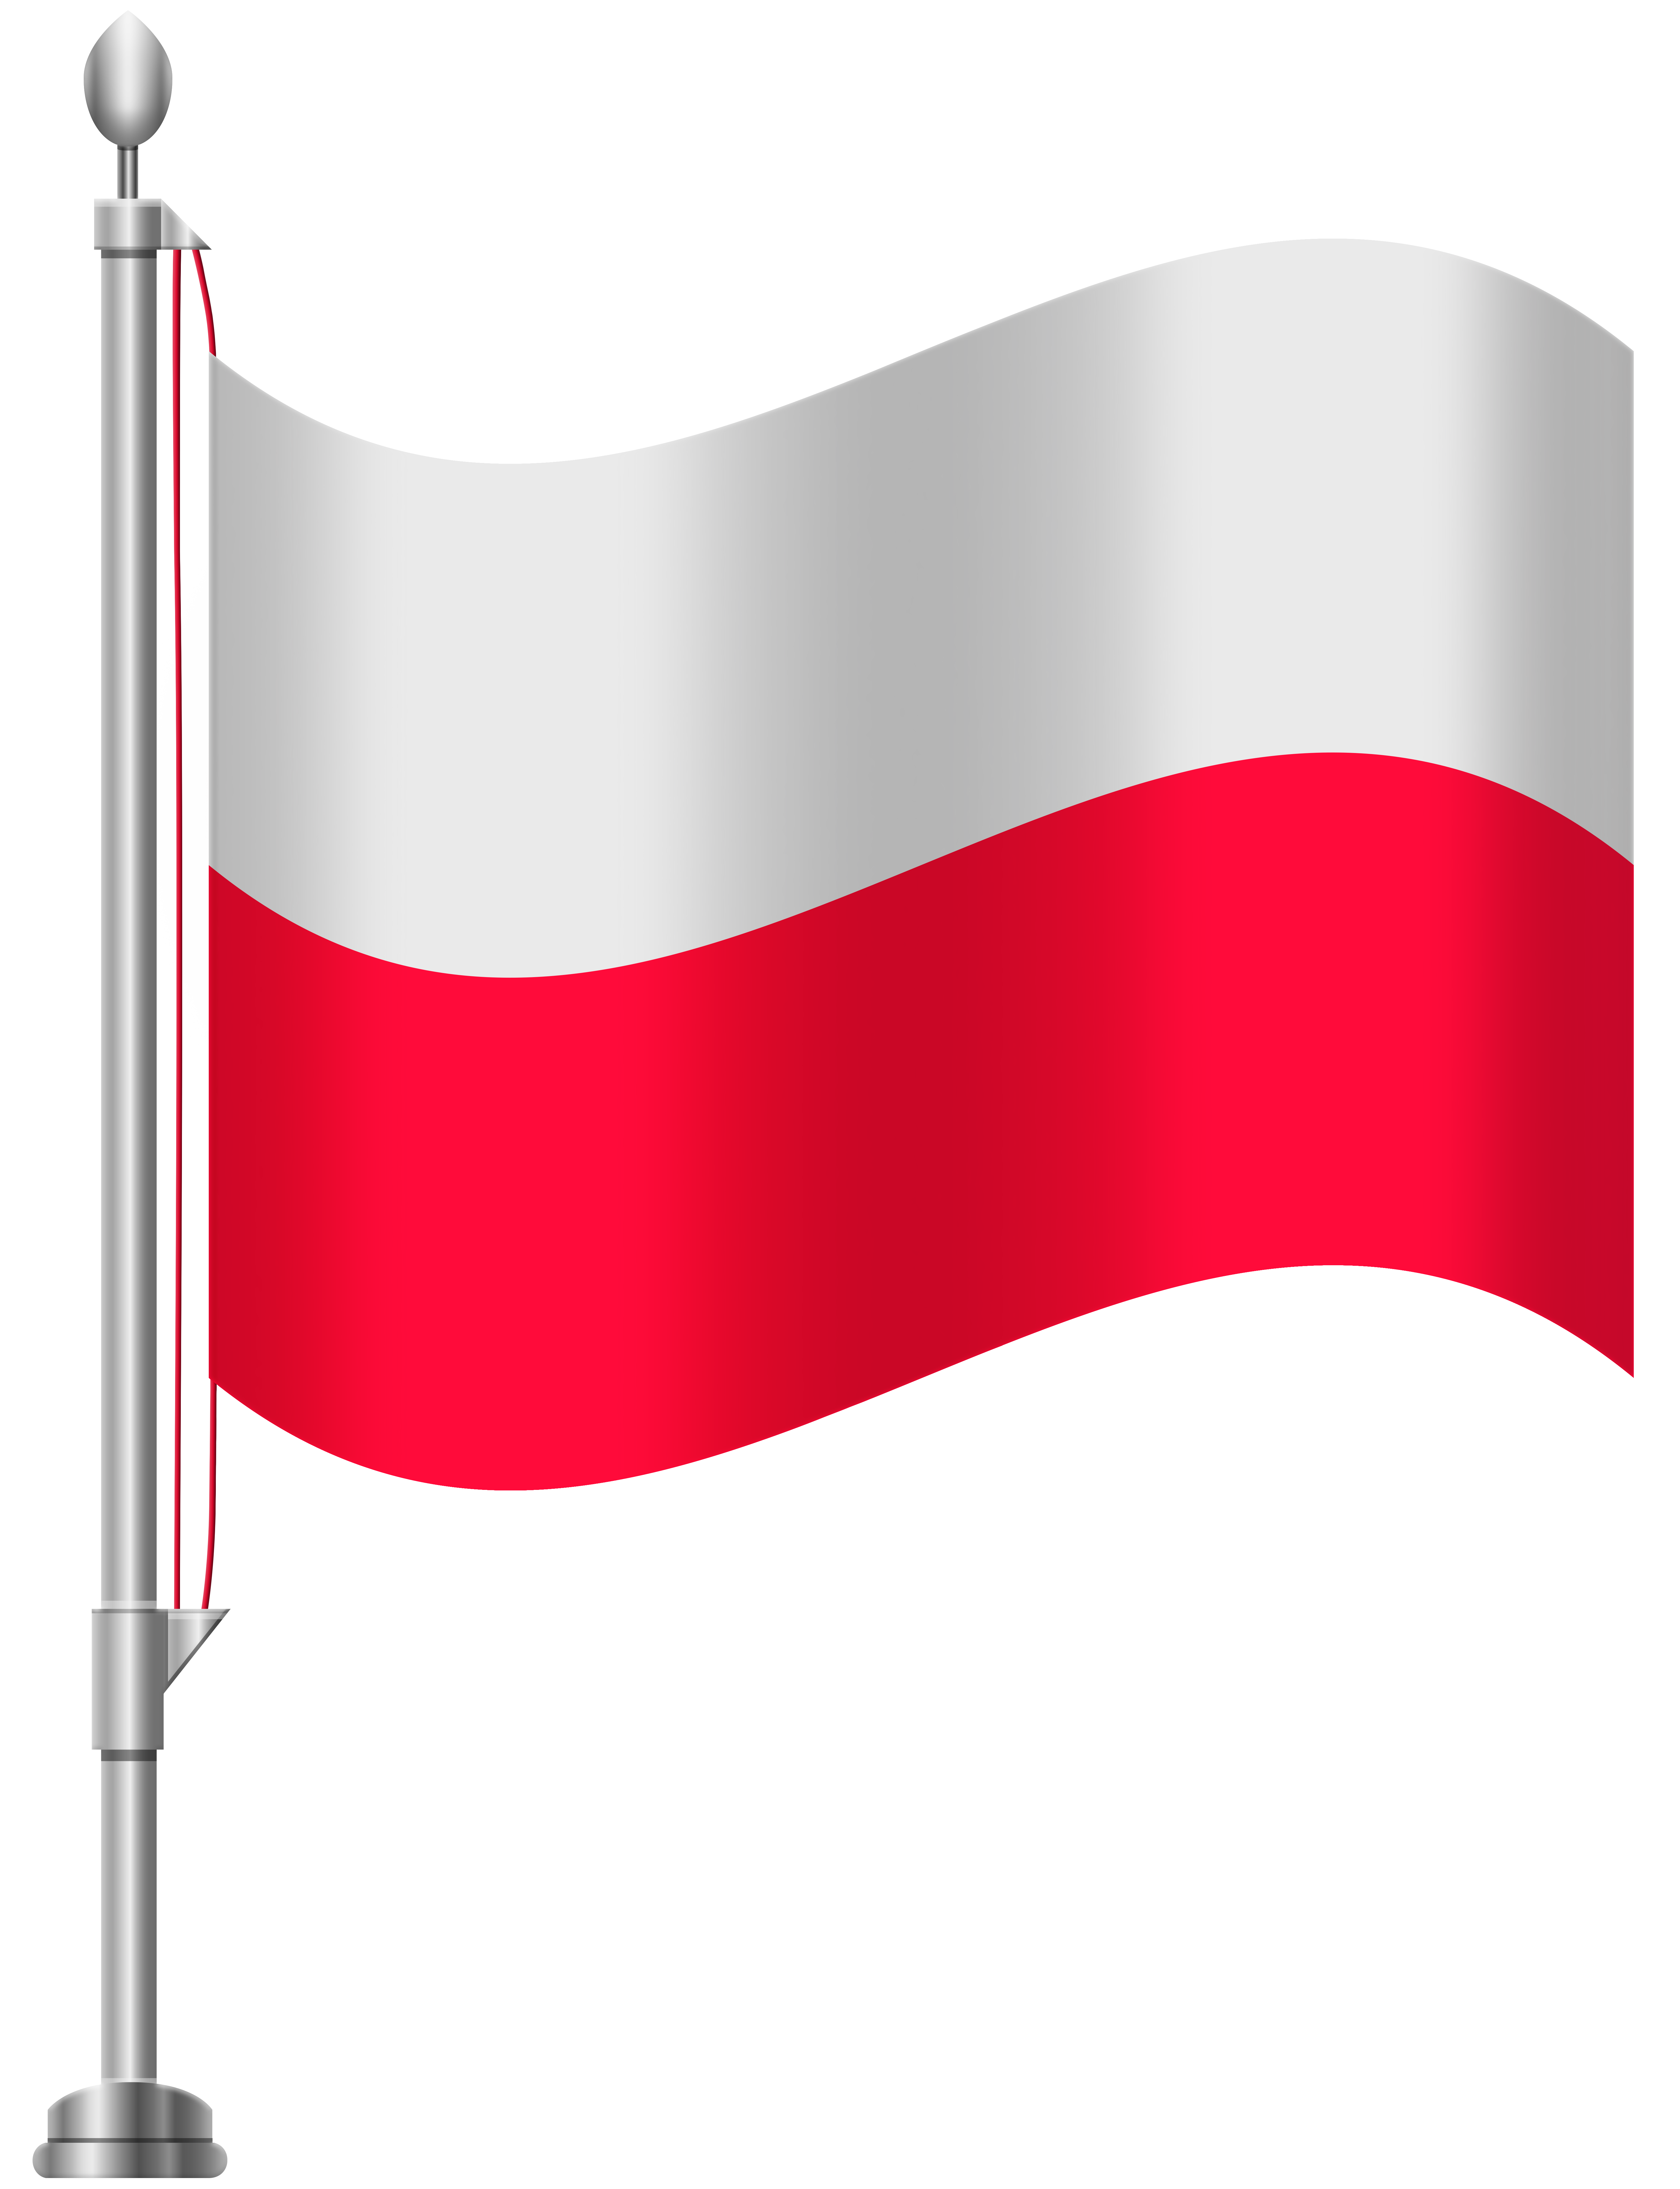 Heels clipart easy. Poland flag png clip